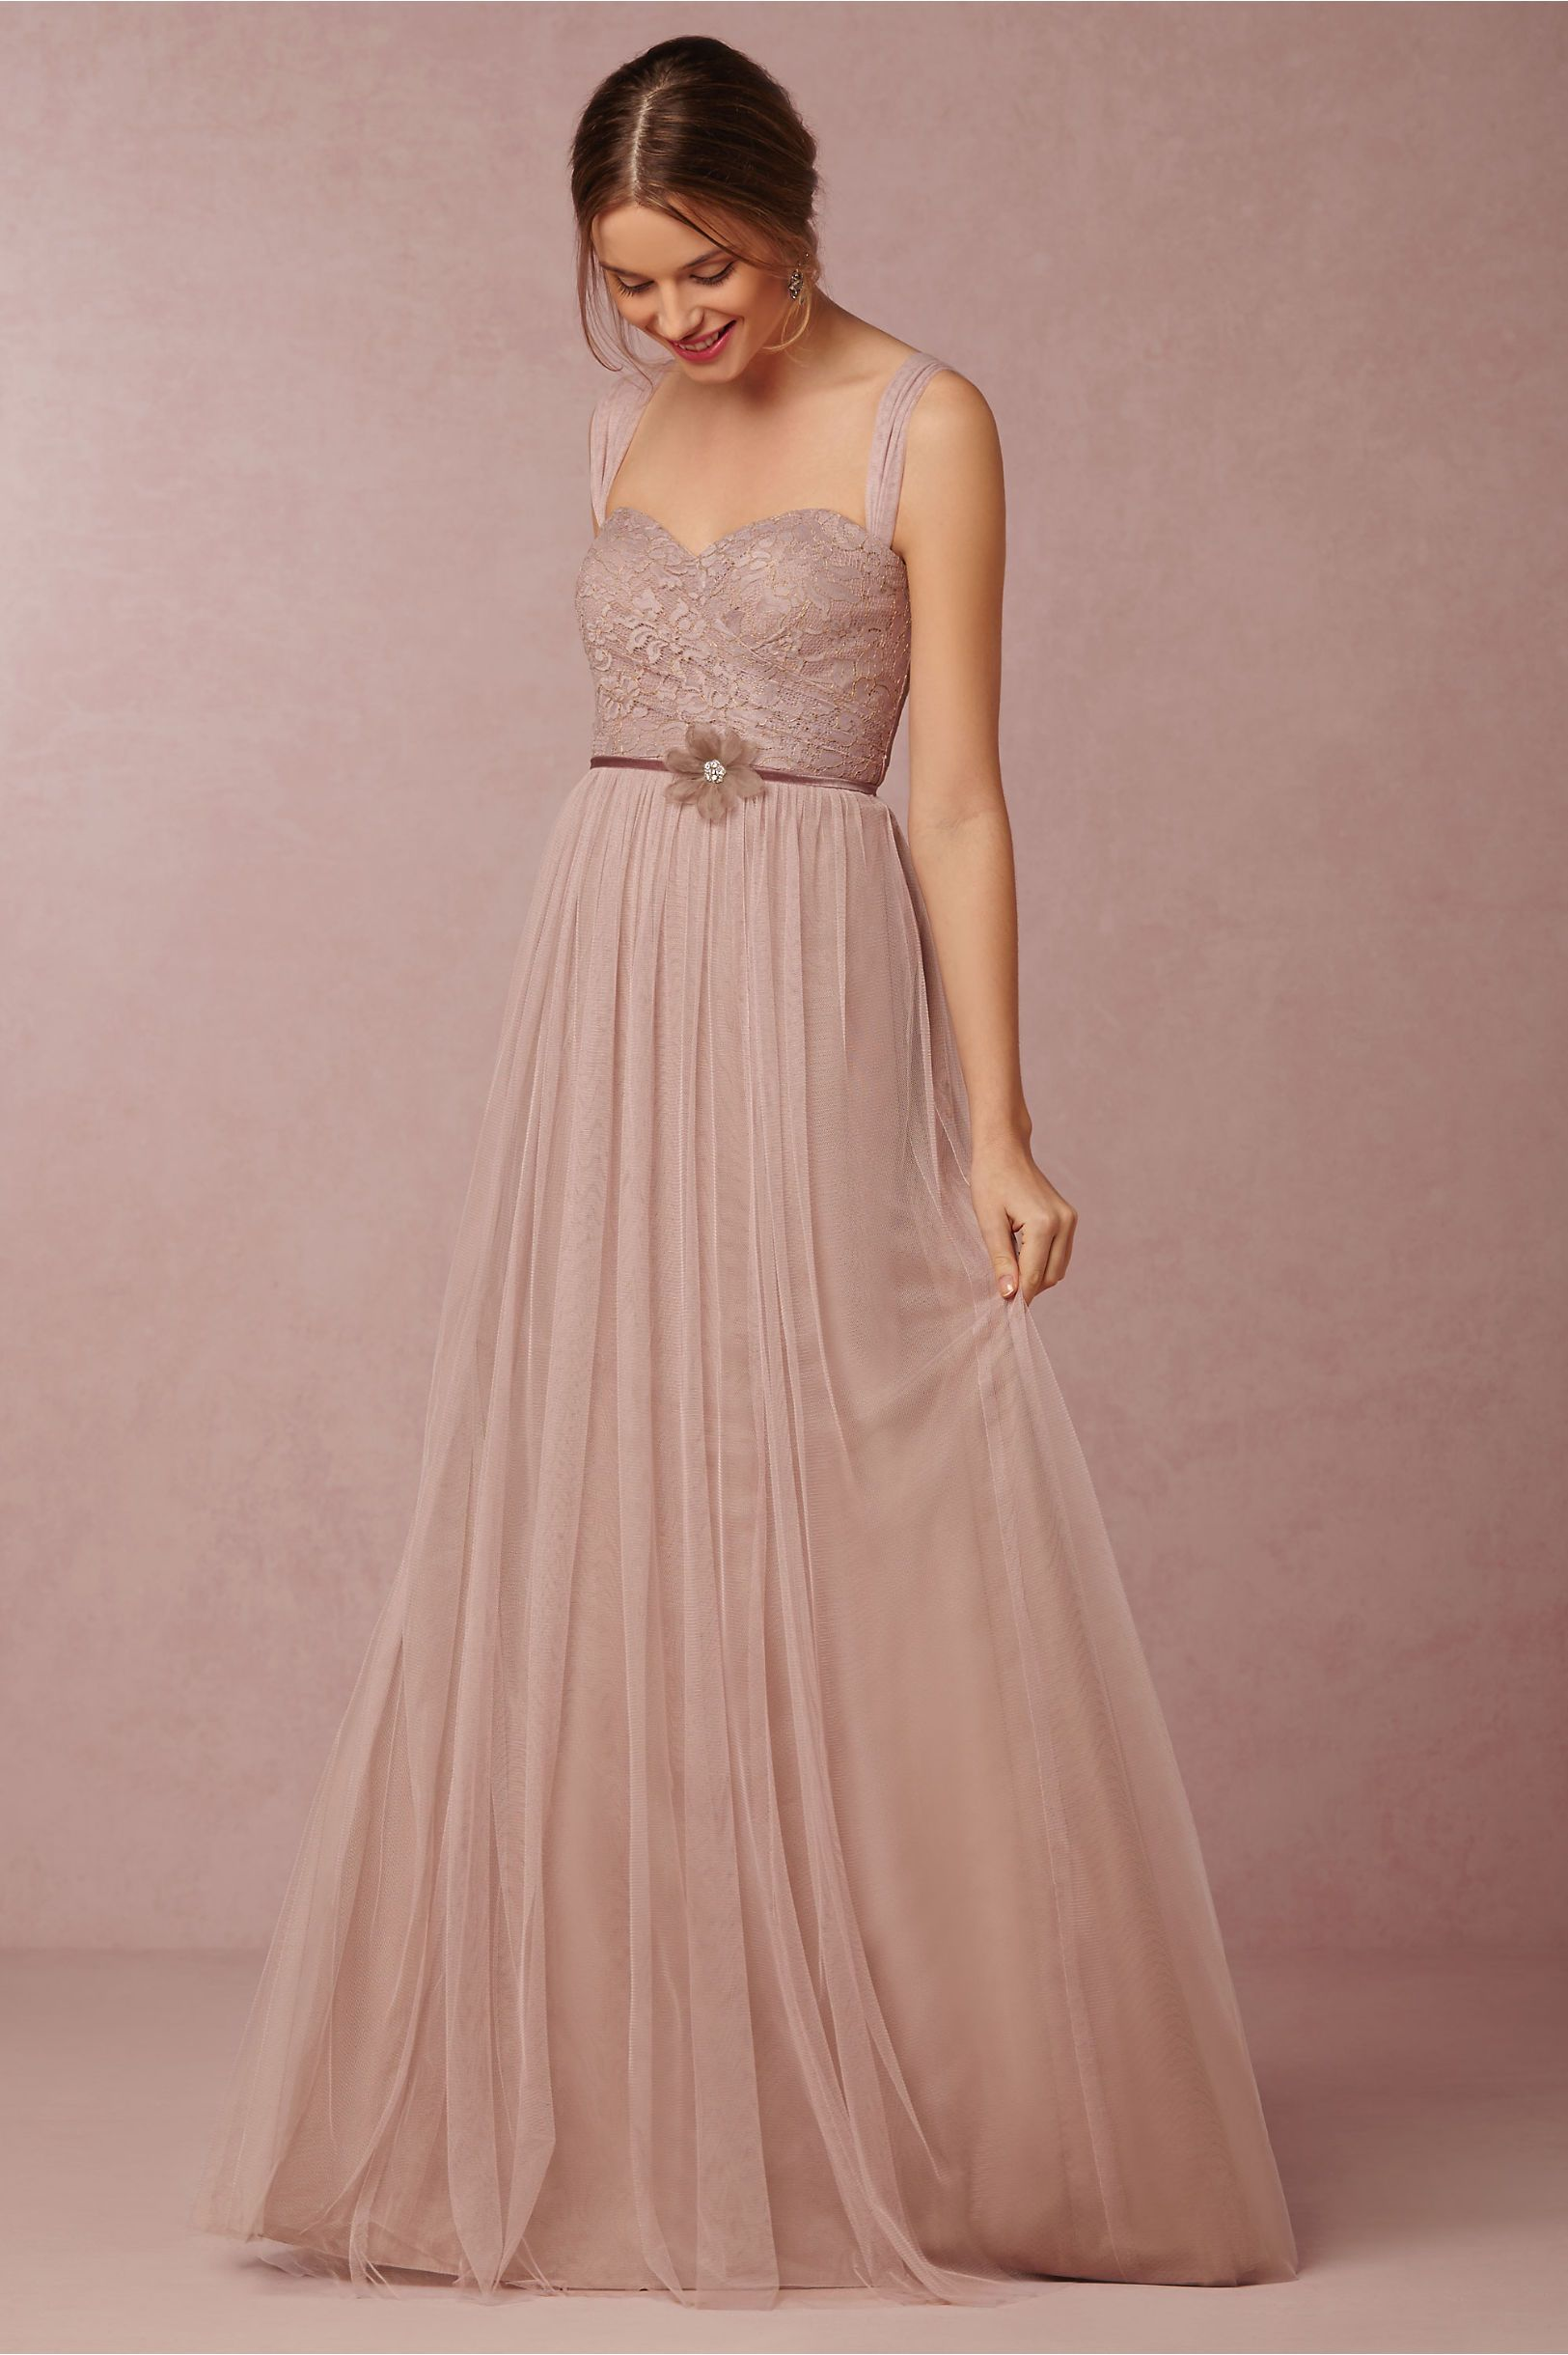 Juliette Bridesmaids Dress in rose quartz from @BHLDN | Wedding ...